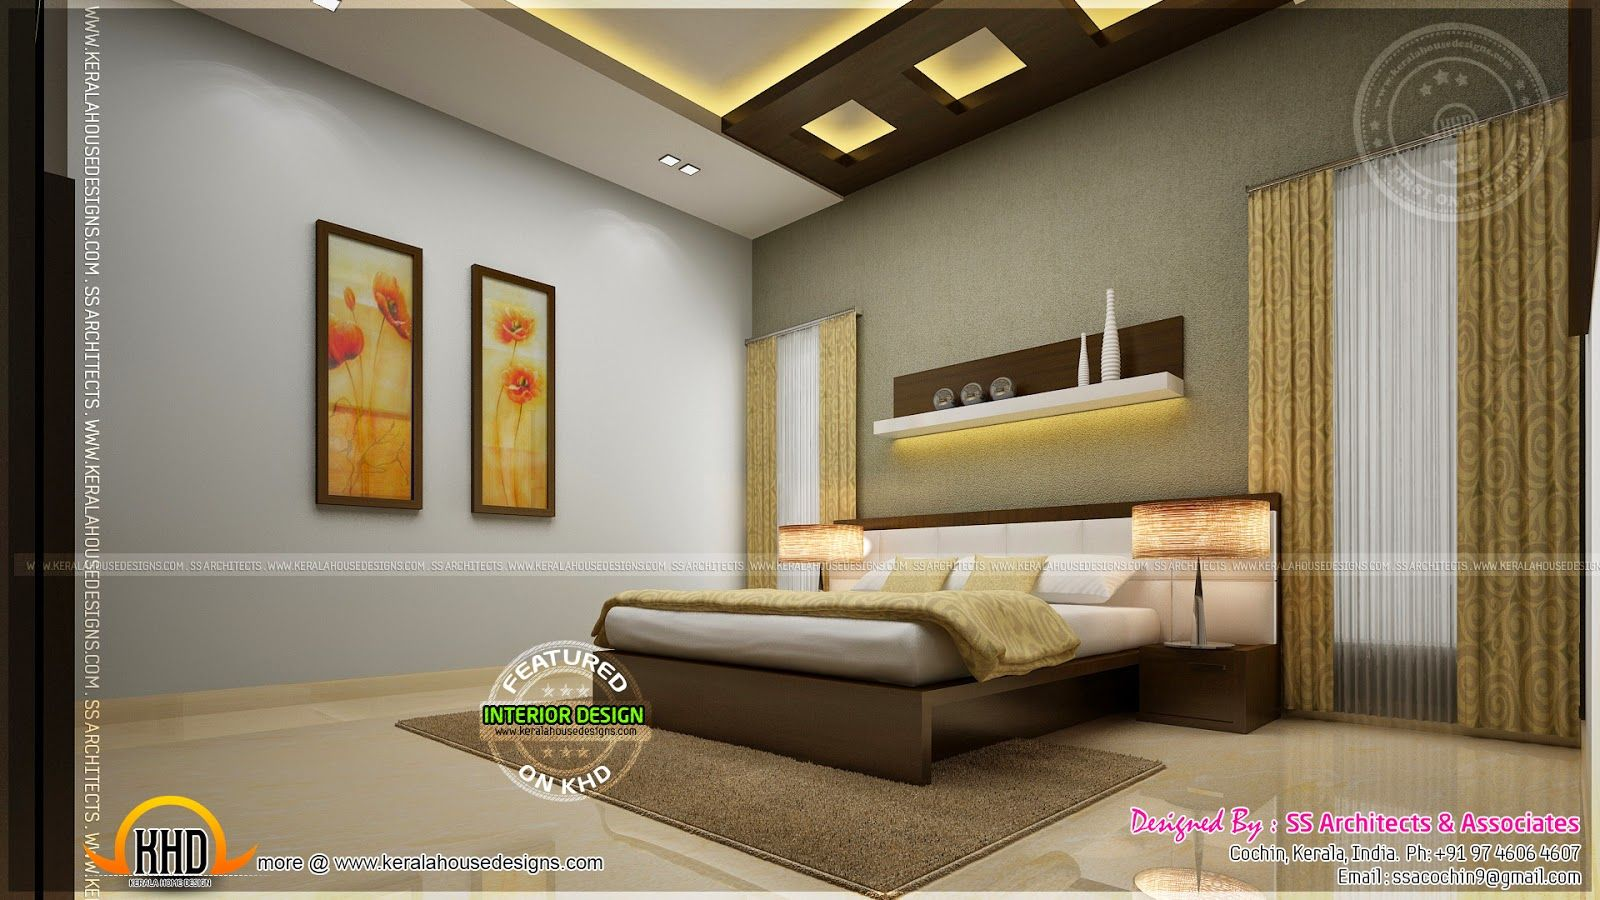 Indian master bedroom interior design google search for Interior wallpaper designs india